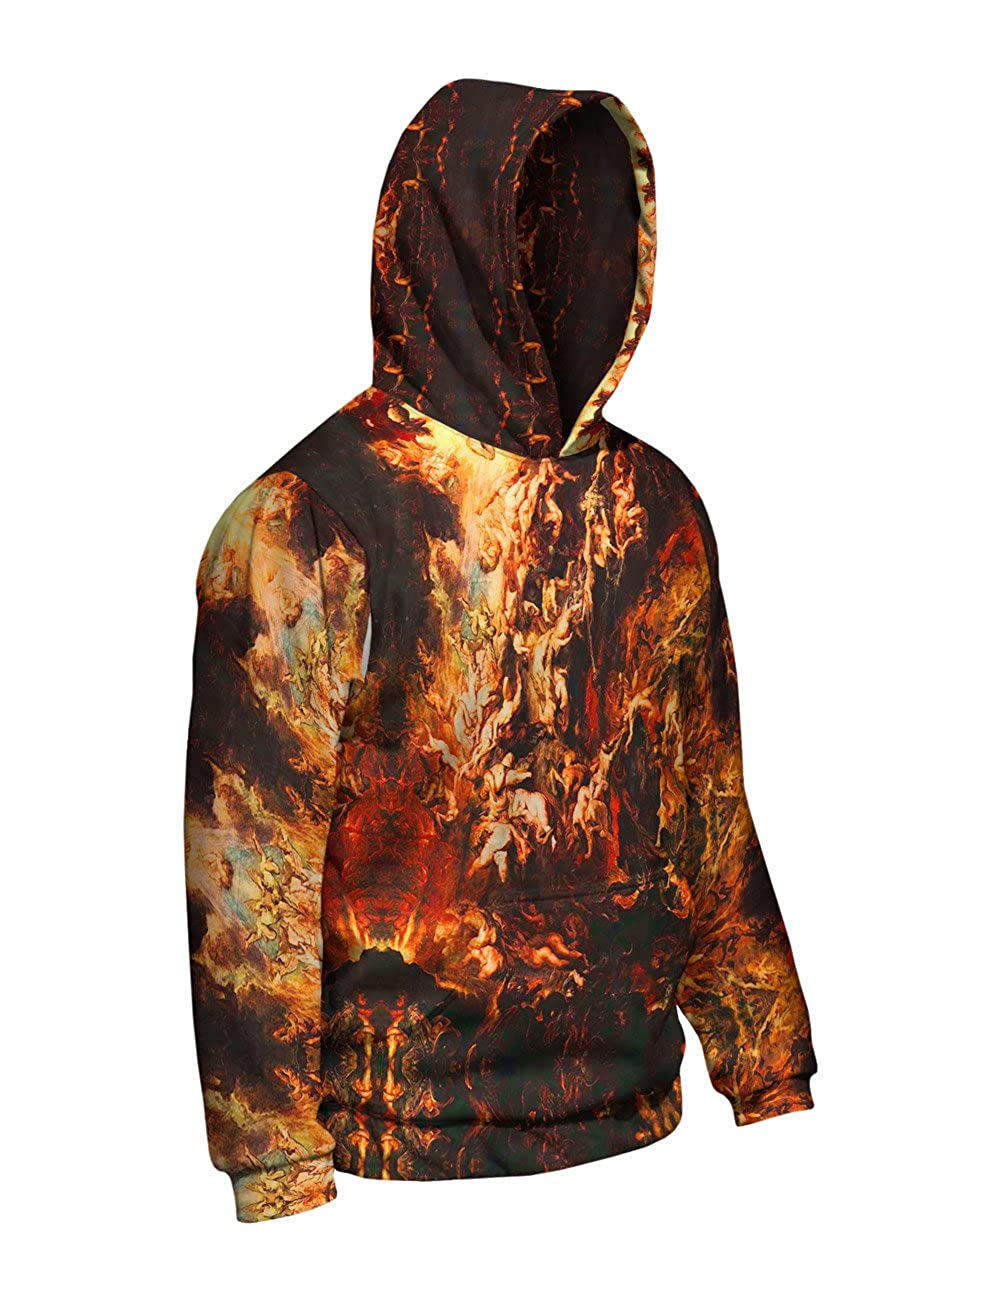 Allover Print The Fall of t Mens Hoodie 2739 Yizzam- Peter Paul Rubens